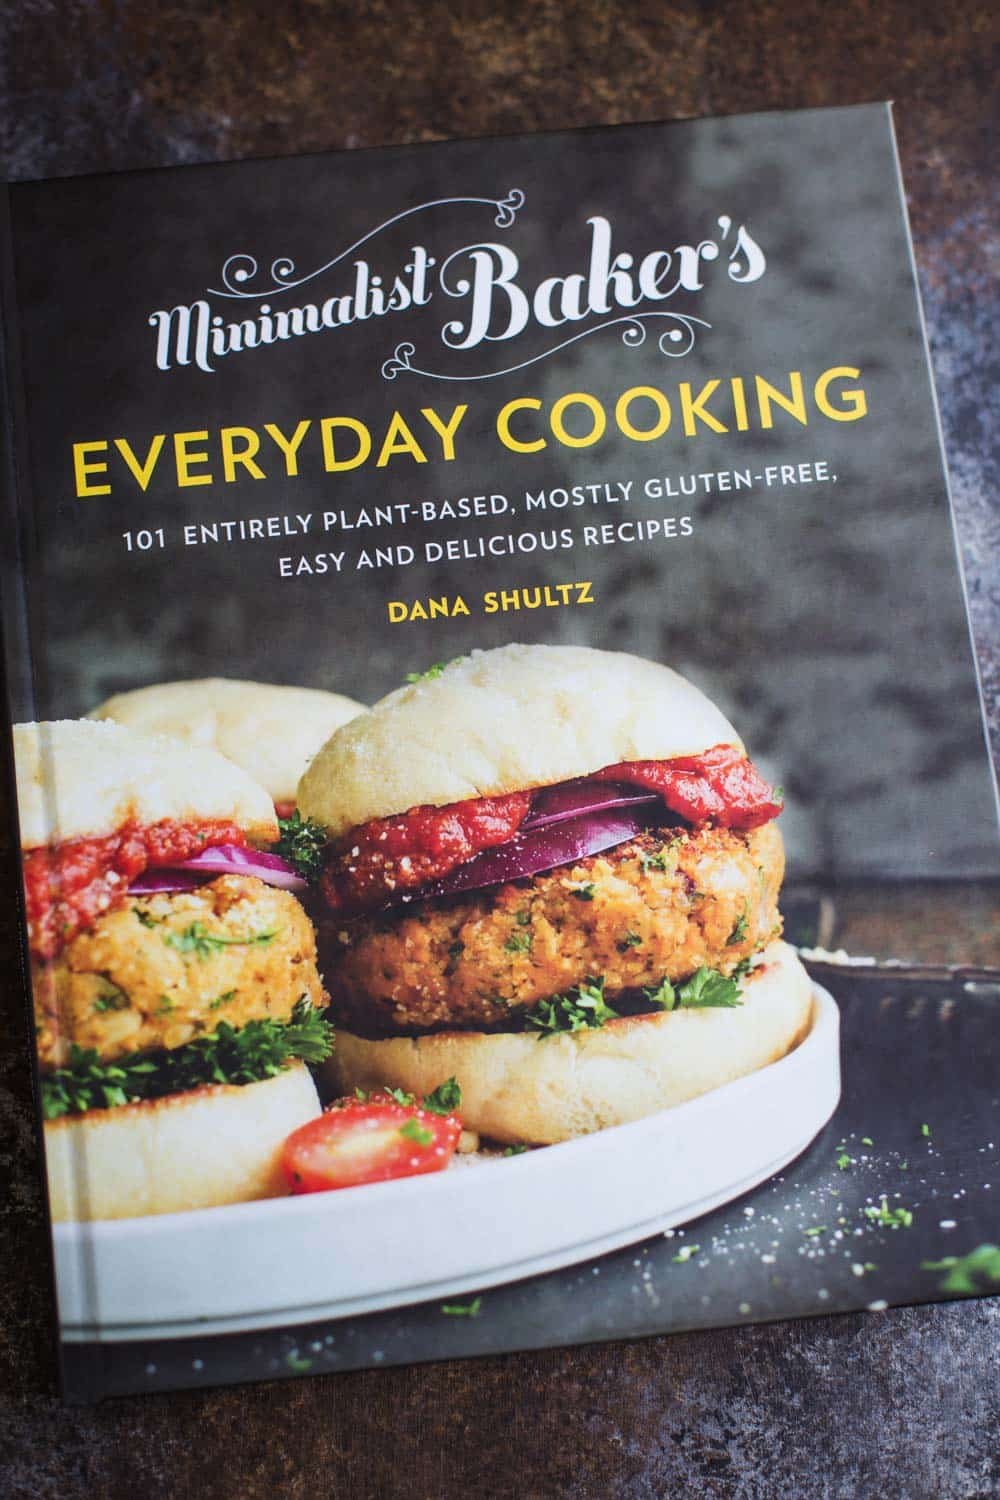 Minimalist Baker's new cookbook: Everyday Cooking